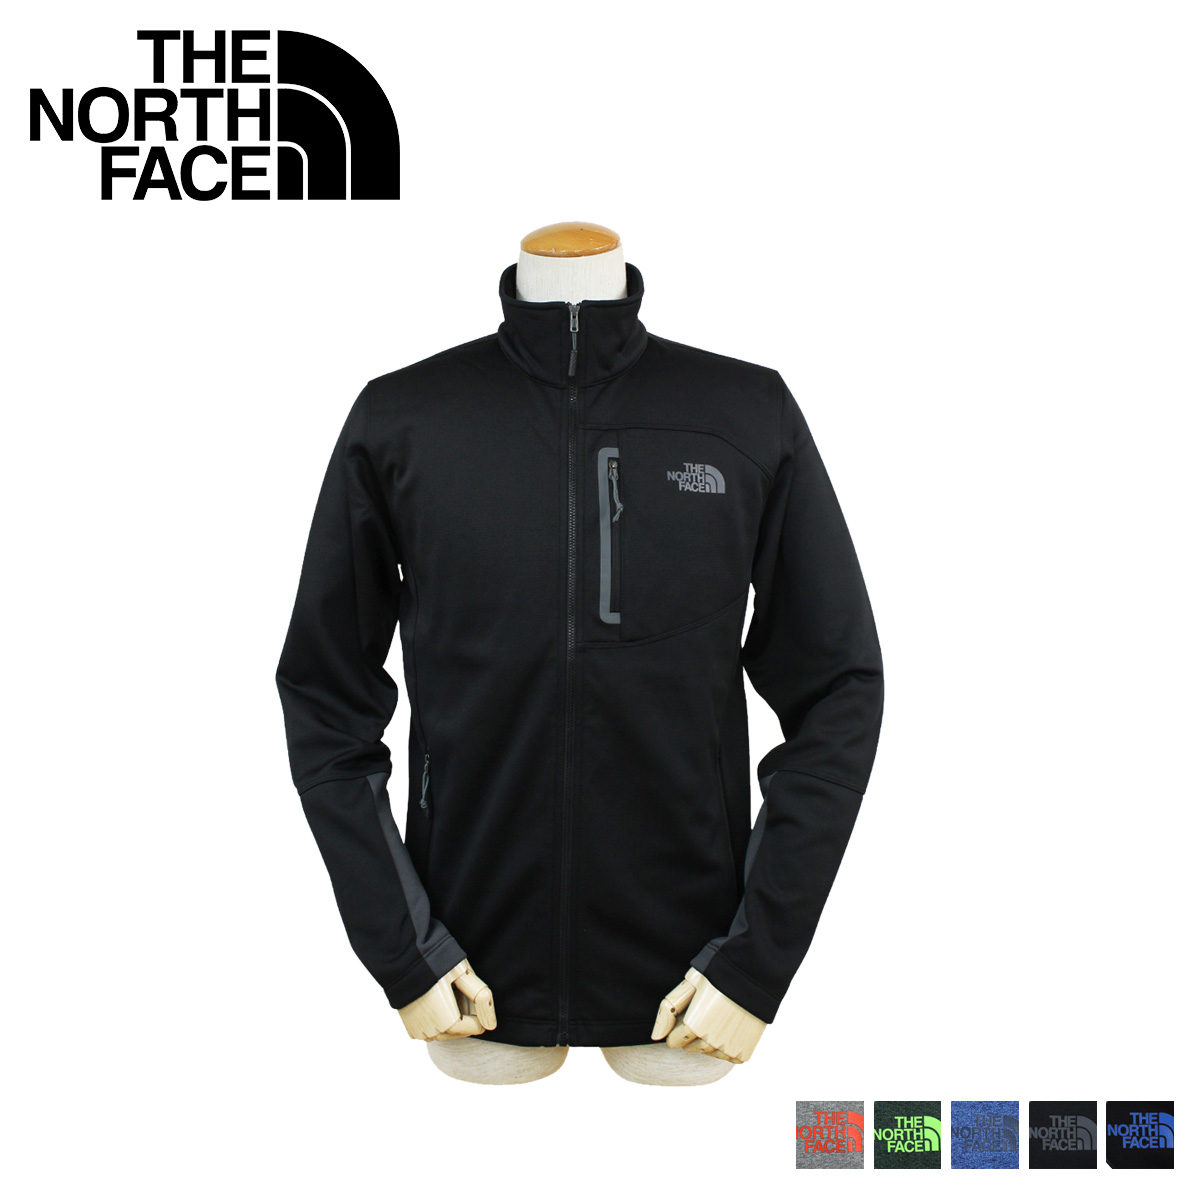 41fefcfc7 THE NORTH FACE north face fleece jacket MEN'S CANYONLANDS FULL ZIP mens